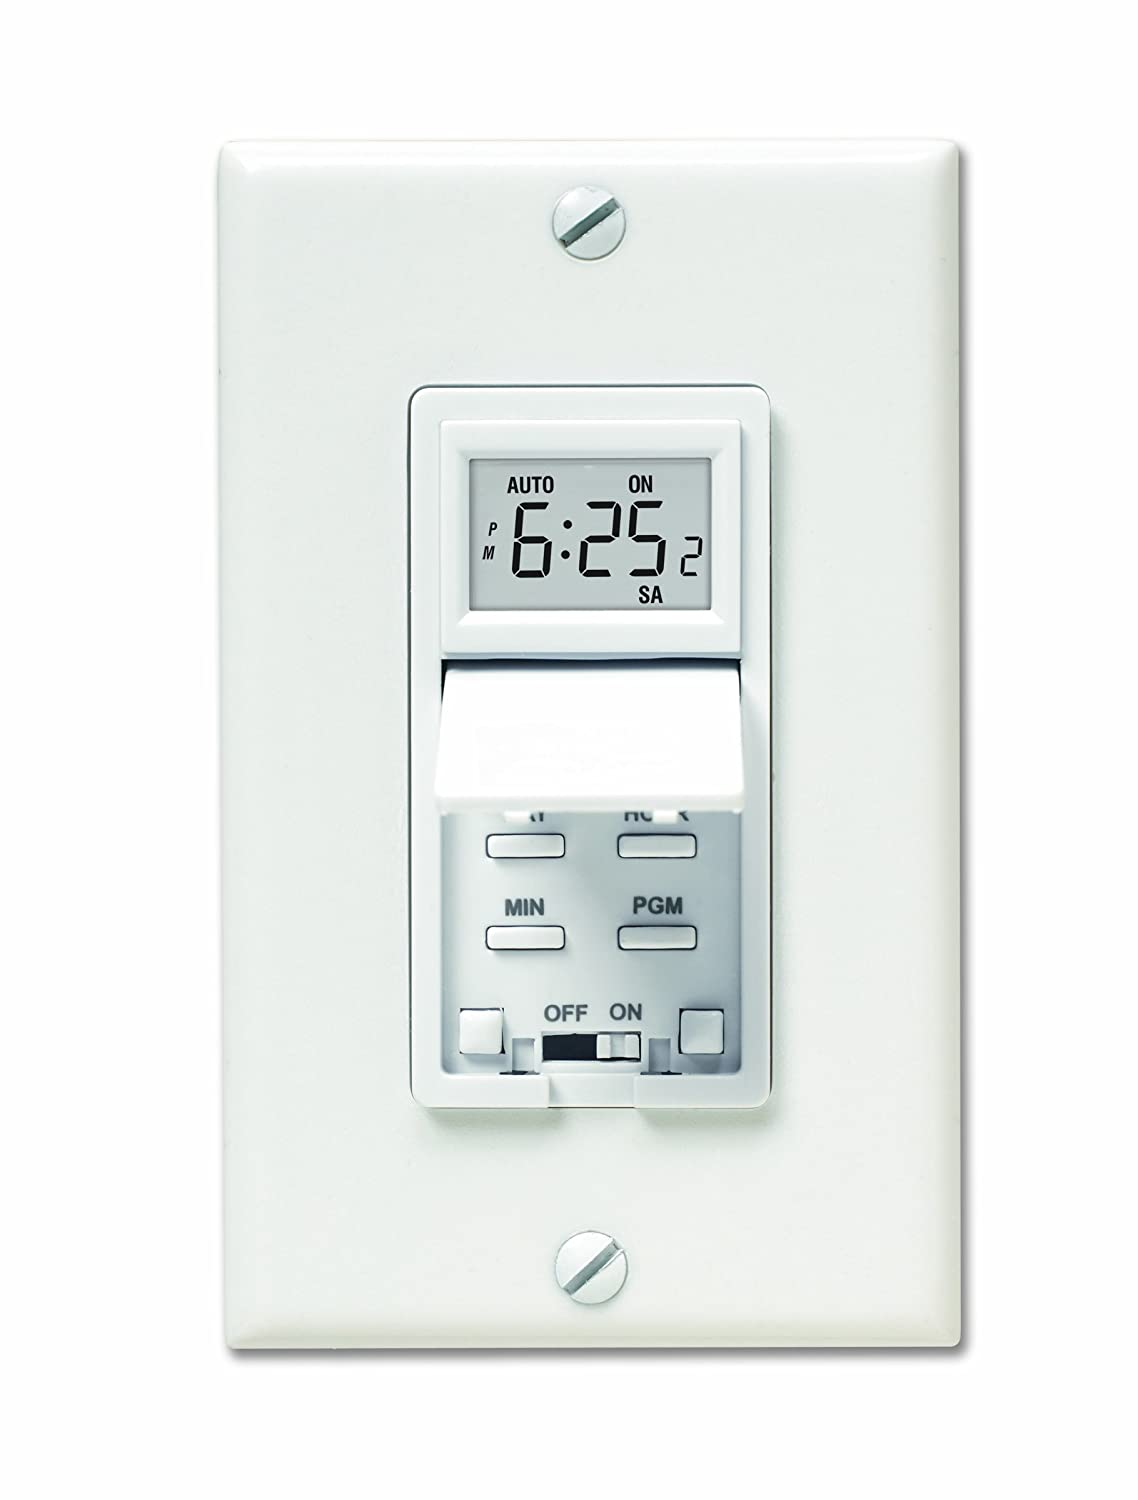 717oiYCarPL._SL1500_ amazon com honeywell rpls530a 7 day programmable timer switch Appliance Switch Honeywell at creativeand.co